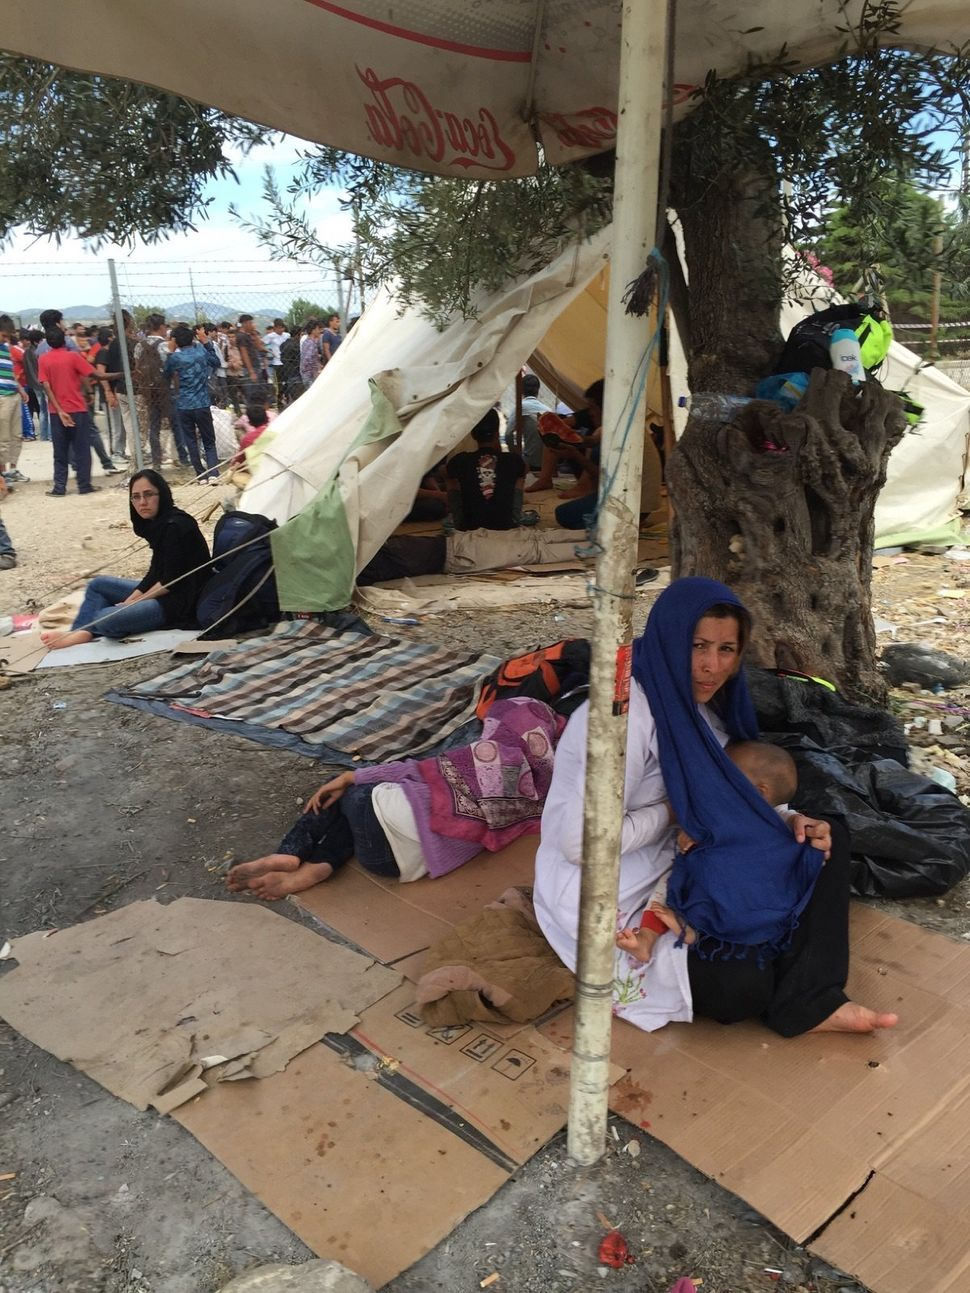 Migrants rest in the shade in Kara Tepe camp in Lesbos, Greece.